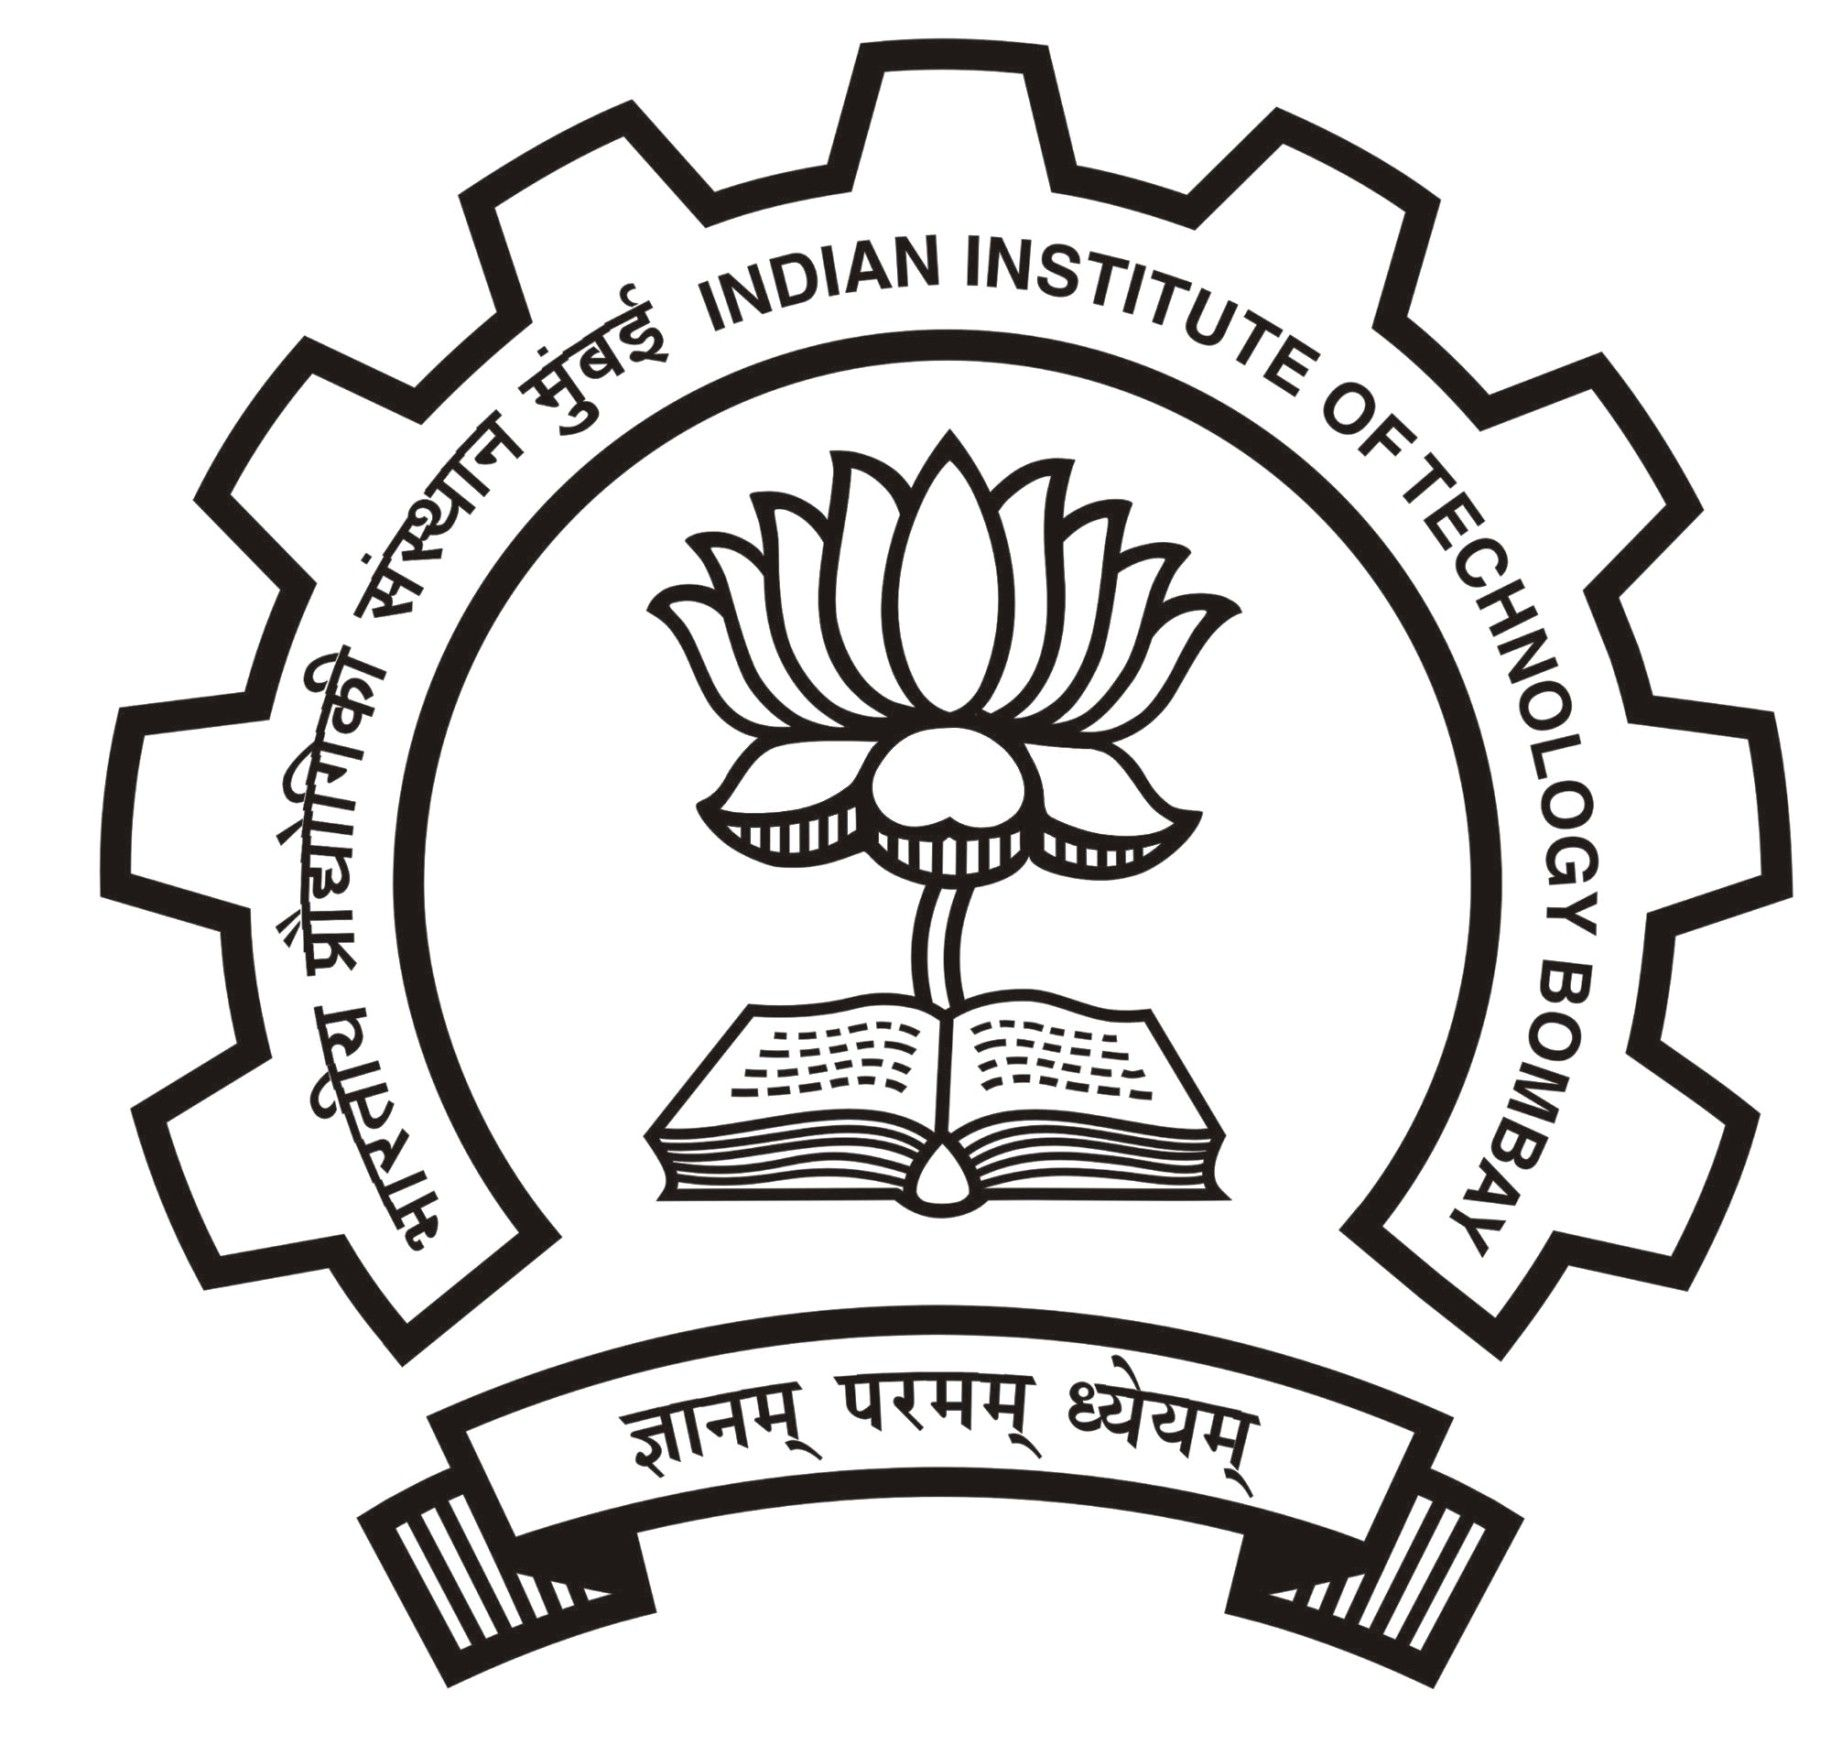 Bombay, cut off, GATE 2012, How to apply, iit bombay m